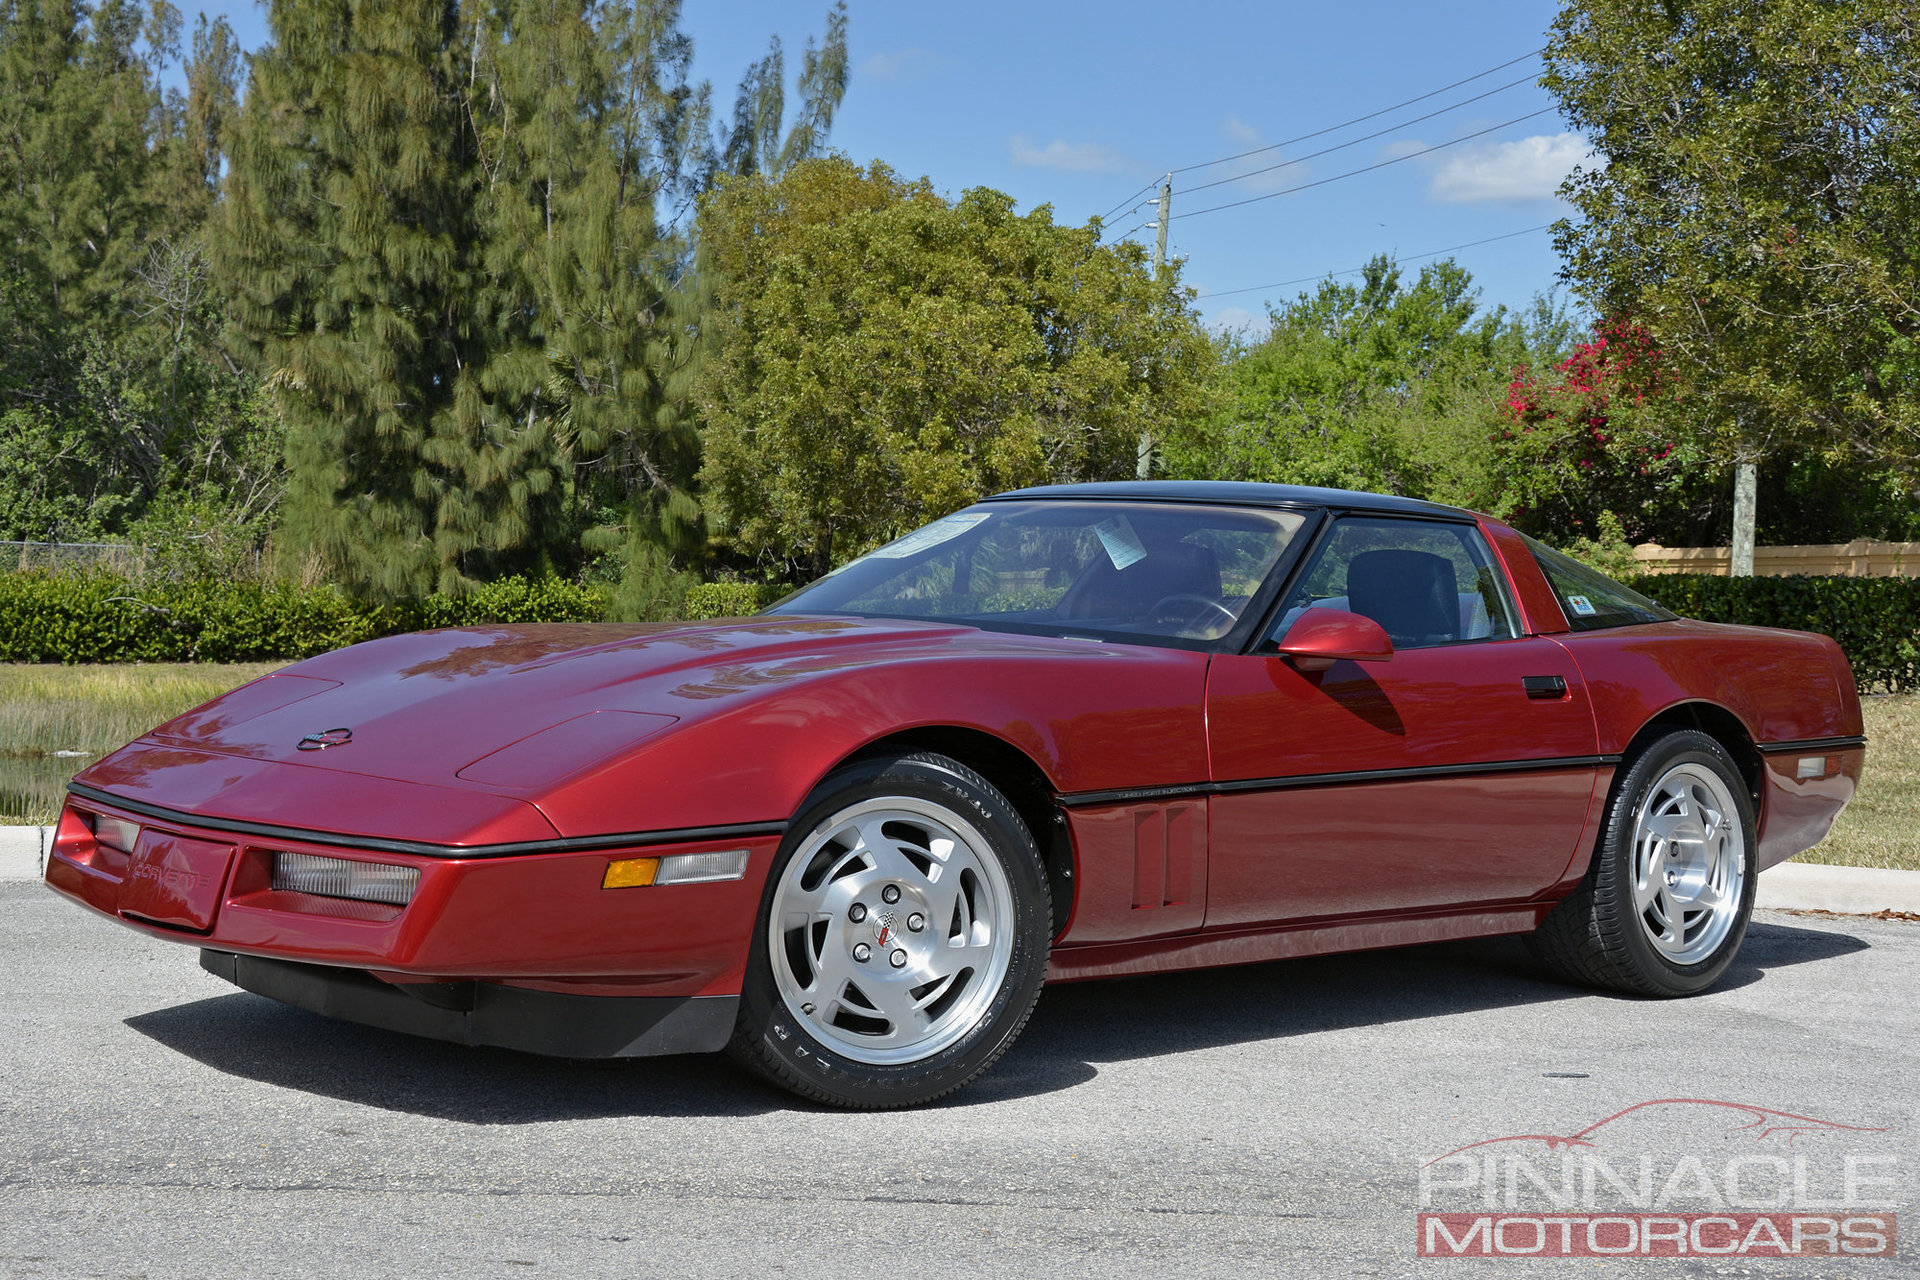 Corvette For Sale Near Me >> Corvette for Sale Near Me | New Car Release Information